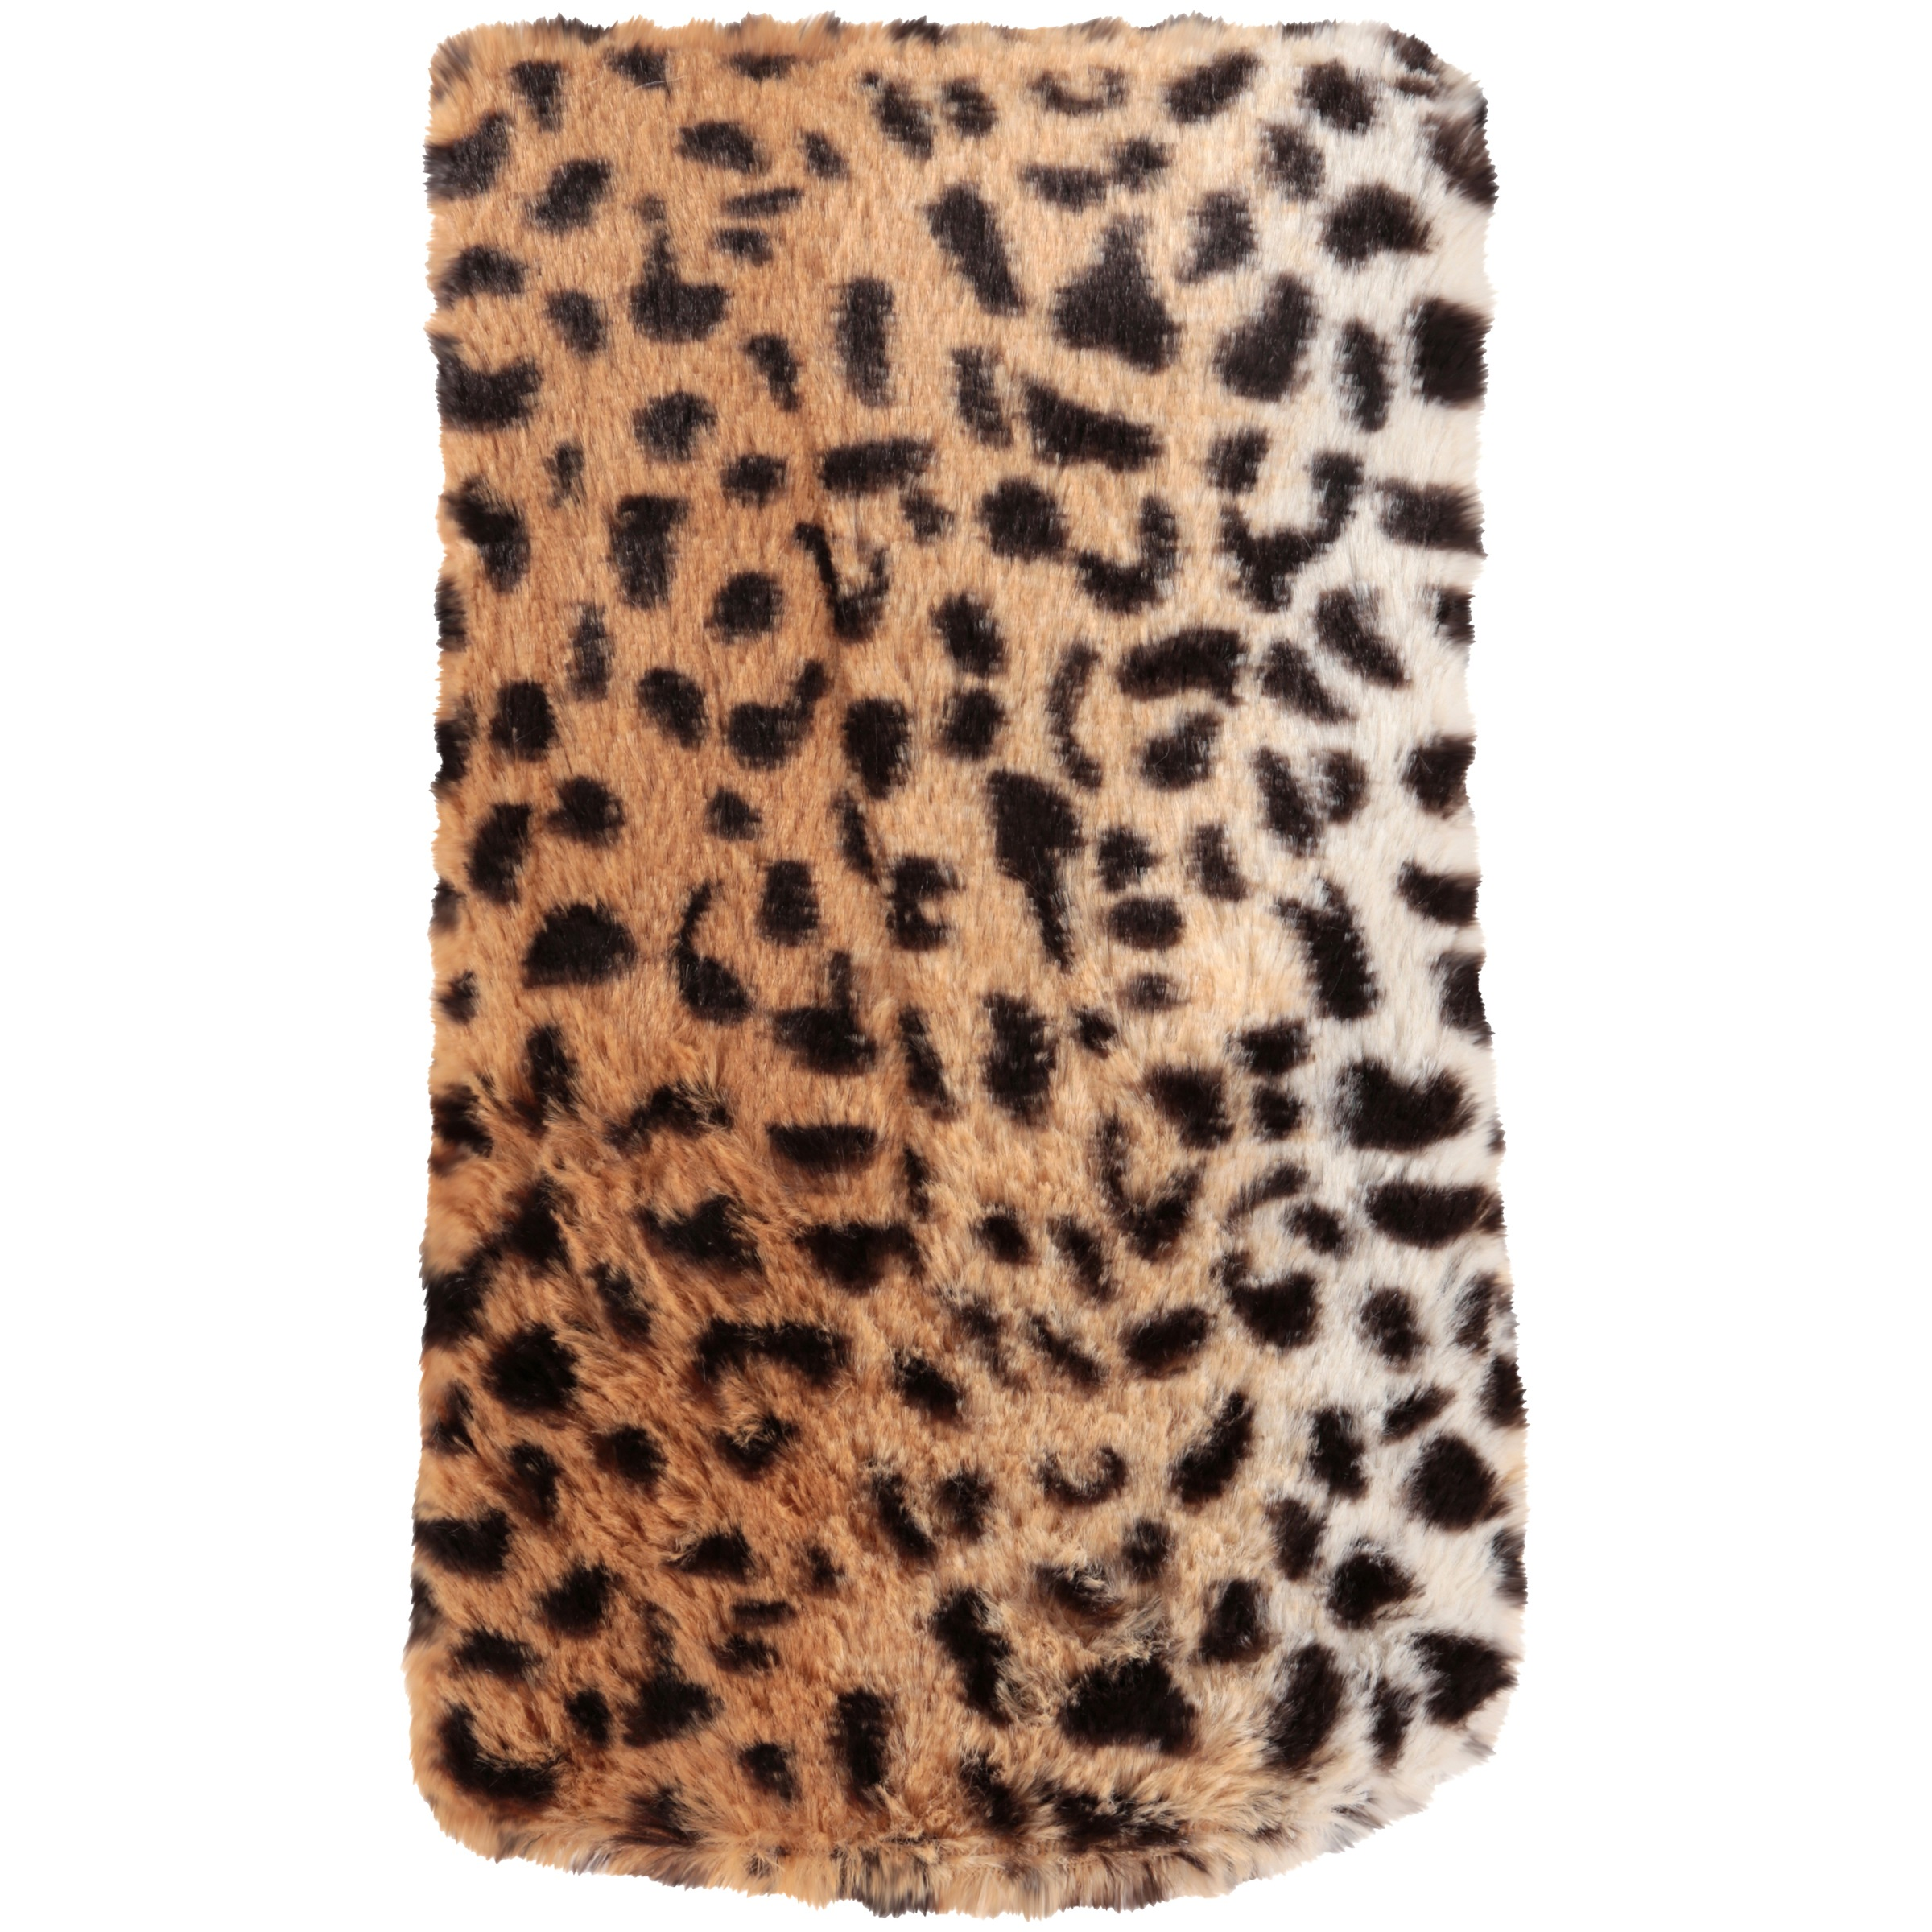 Mainstays Faux Fur Body Pillow Cover